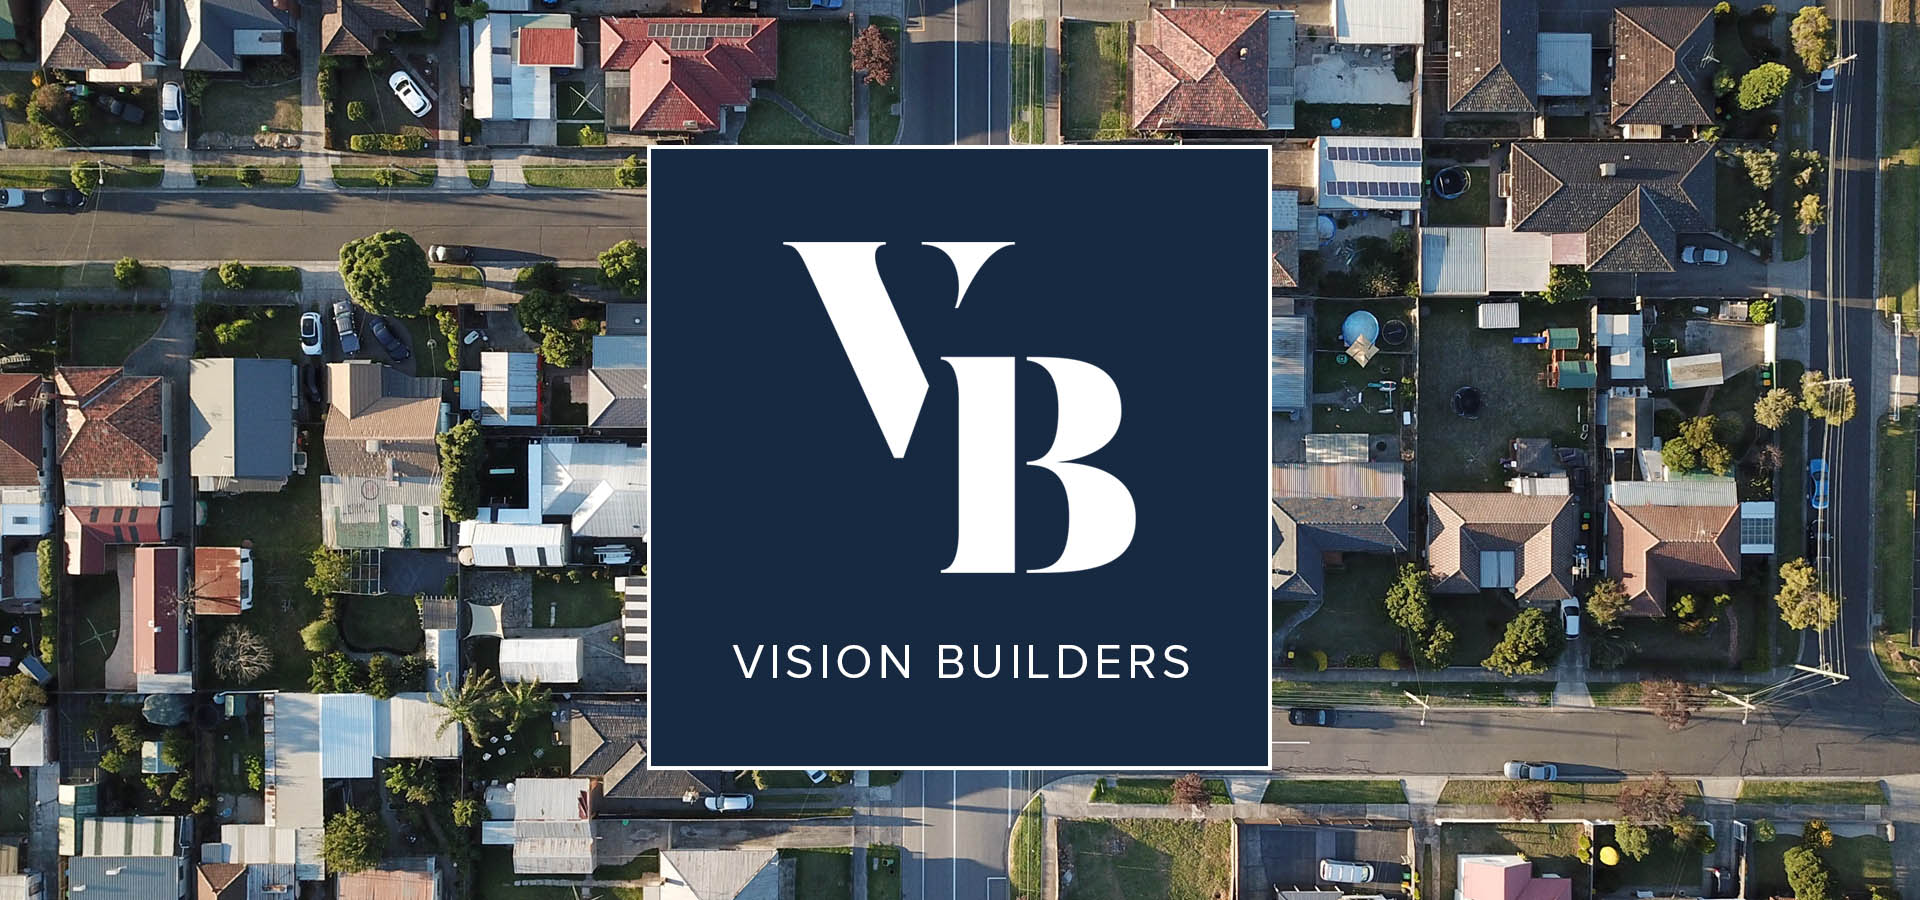 C3 Church Springfield Vision Builders